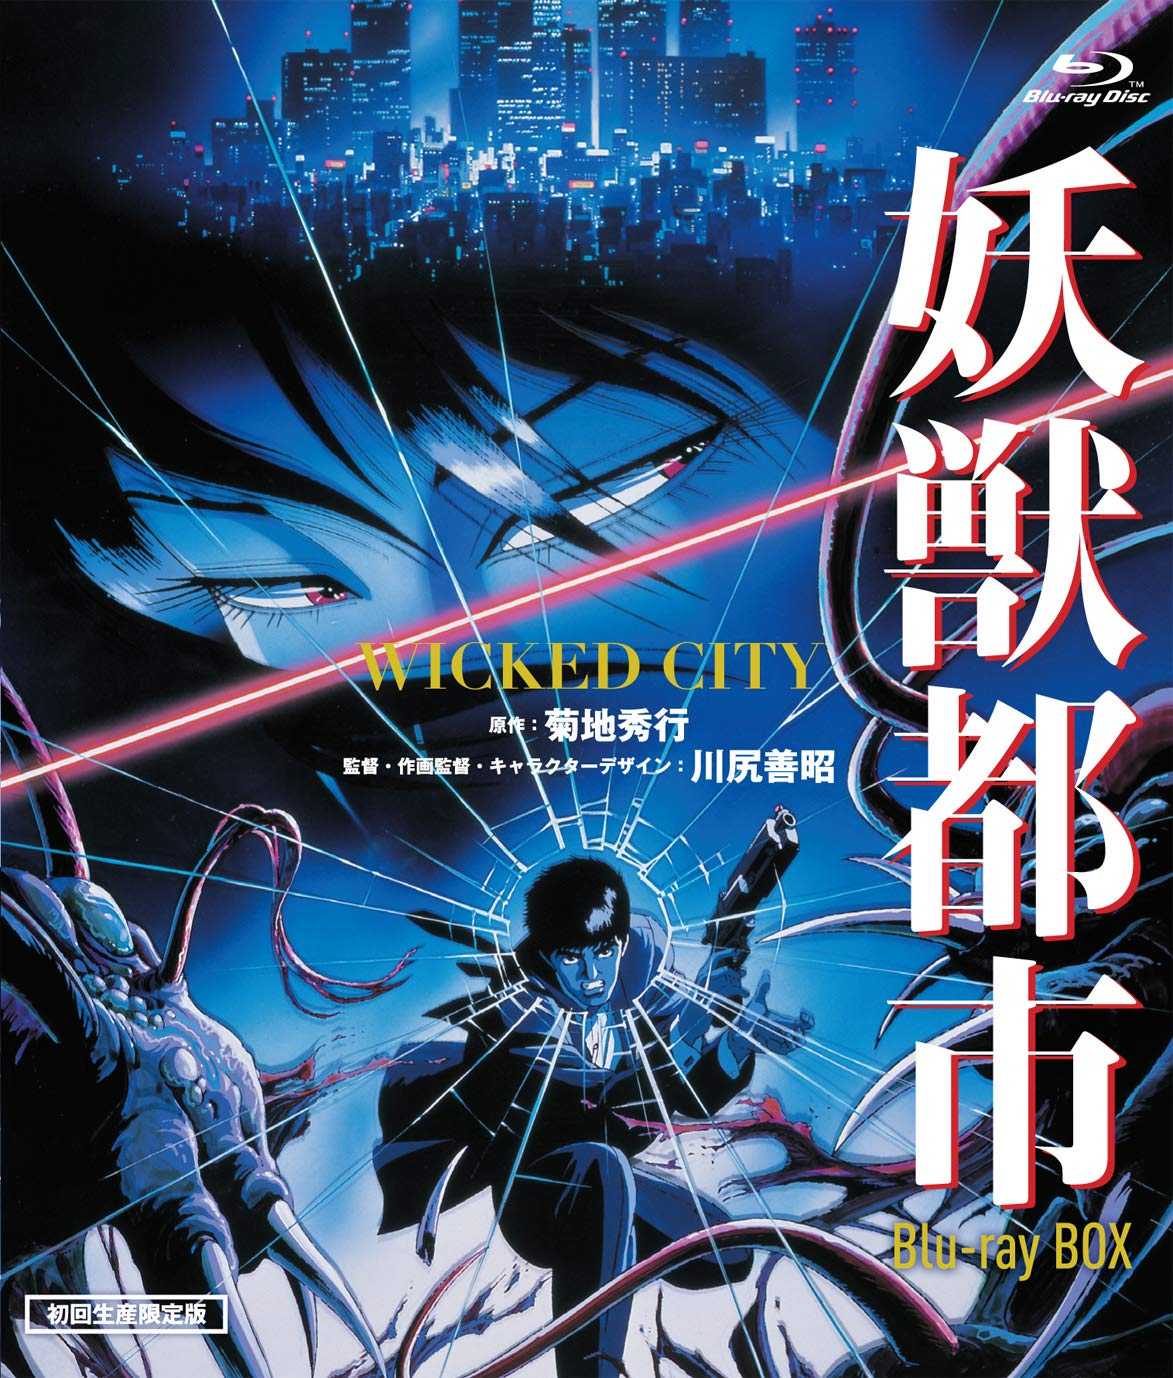 Amazon.com: 妖獣 City Blu-ray Box (first production Limited ...